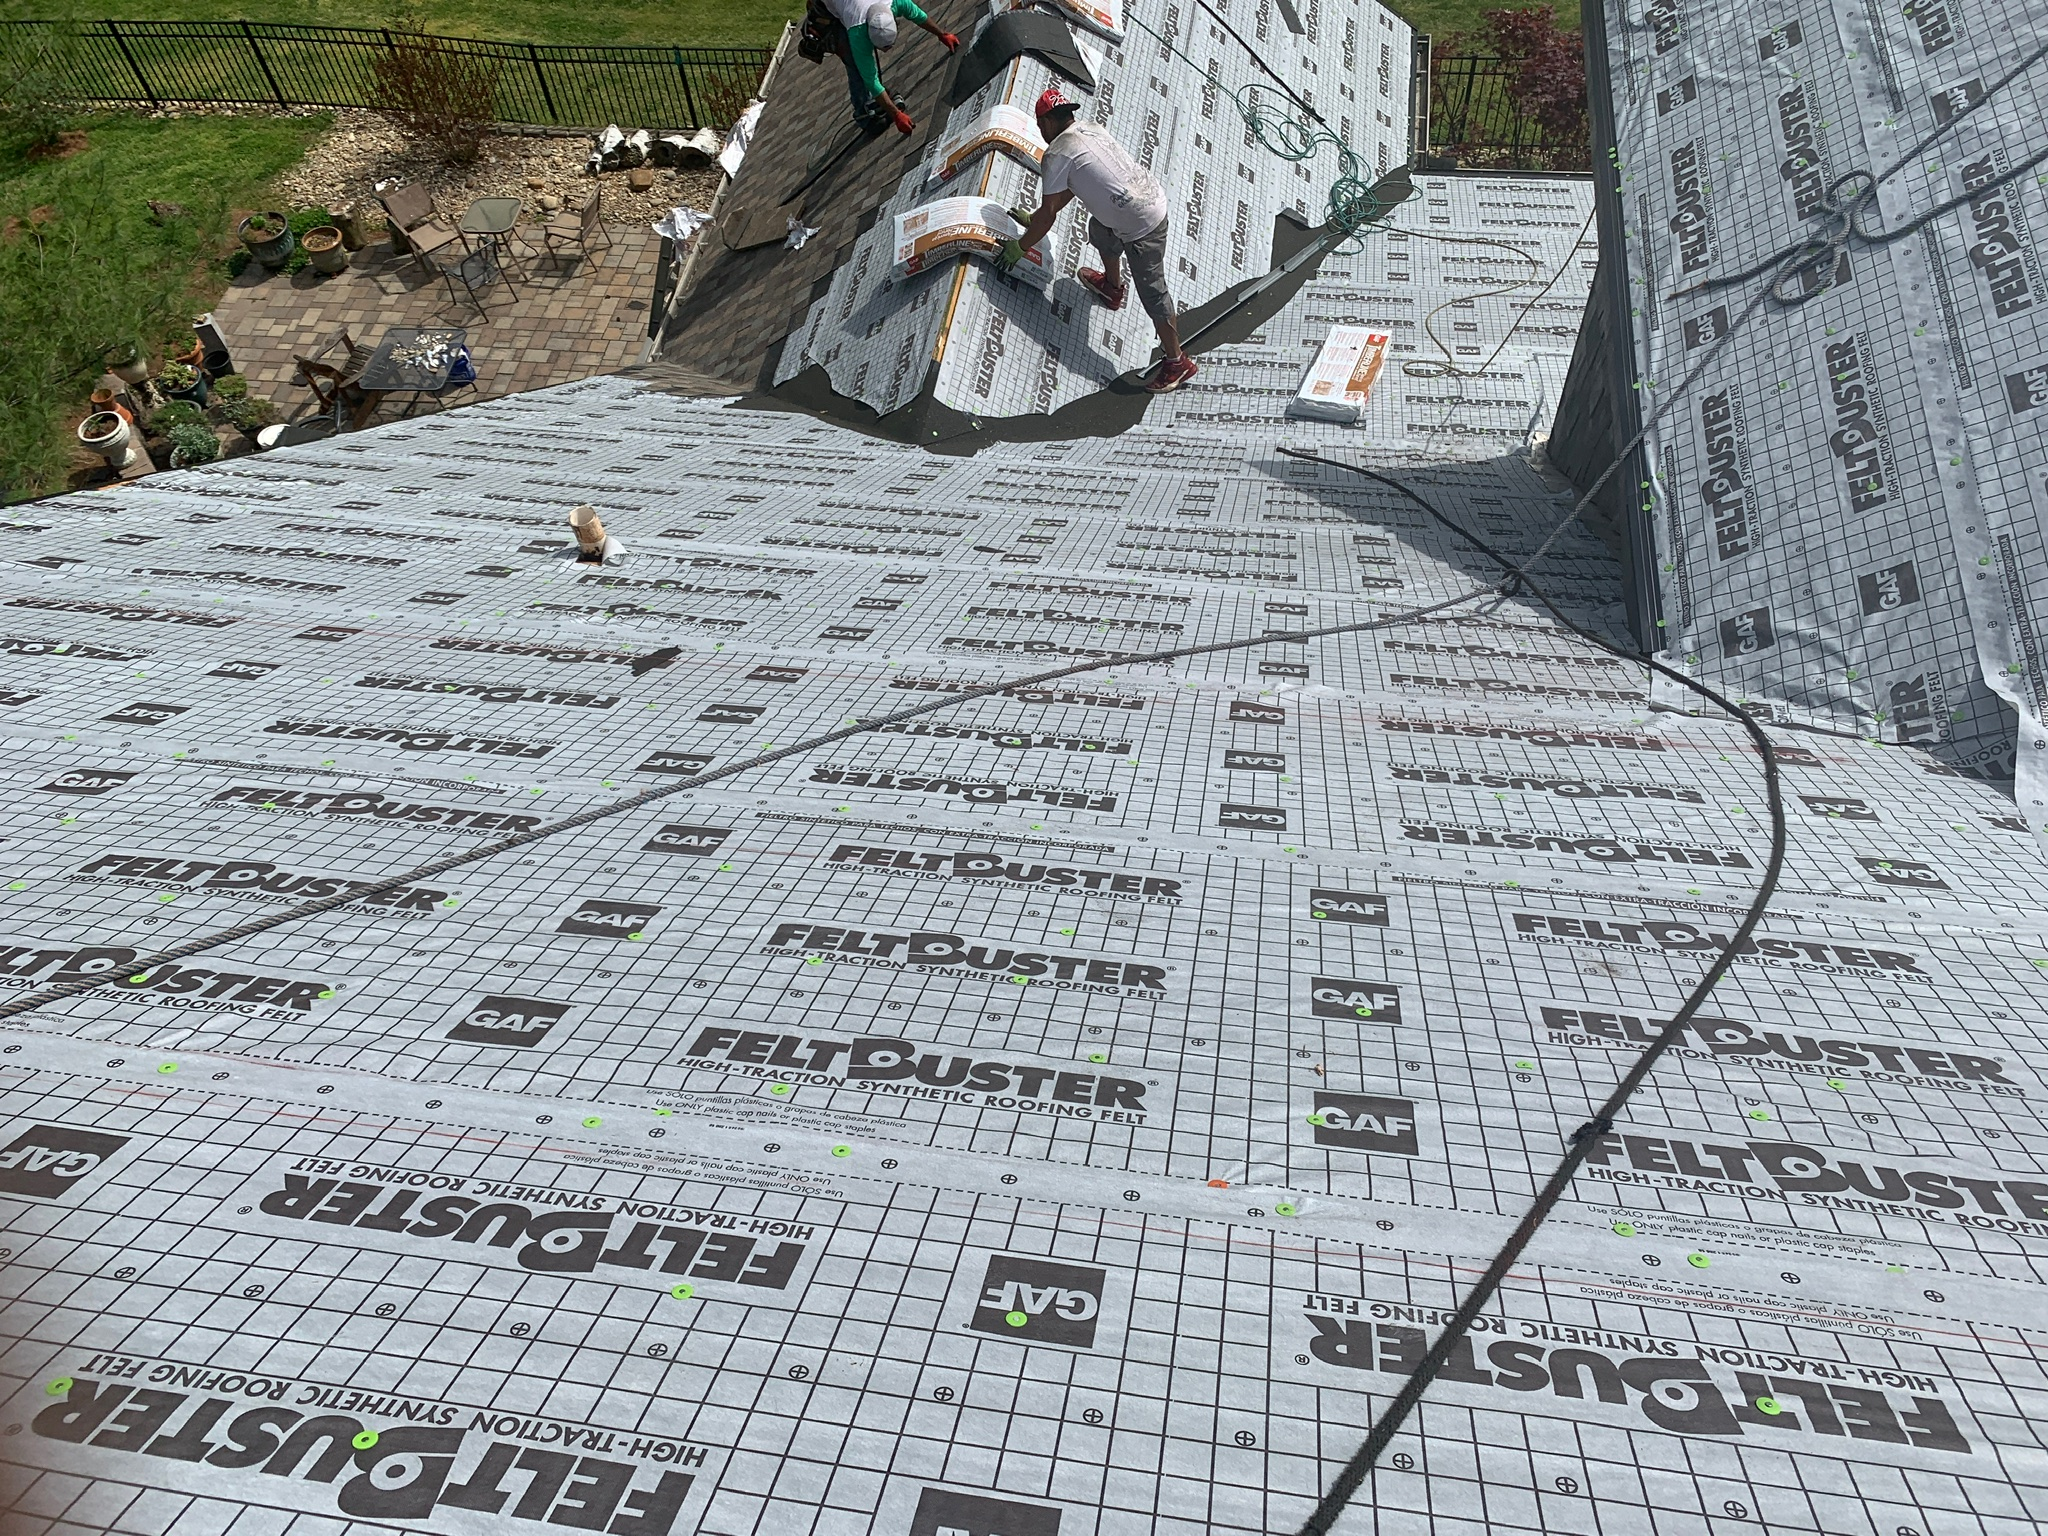 This is a view of GAF Feltbuster being installed on a portion of the roof.